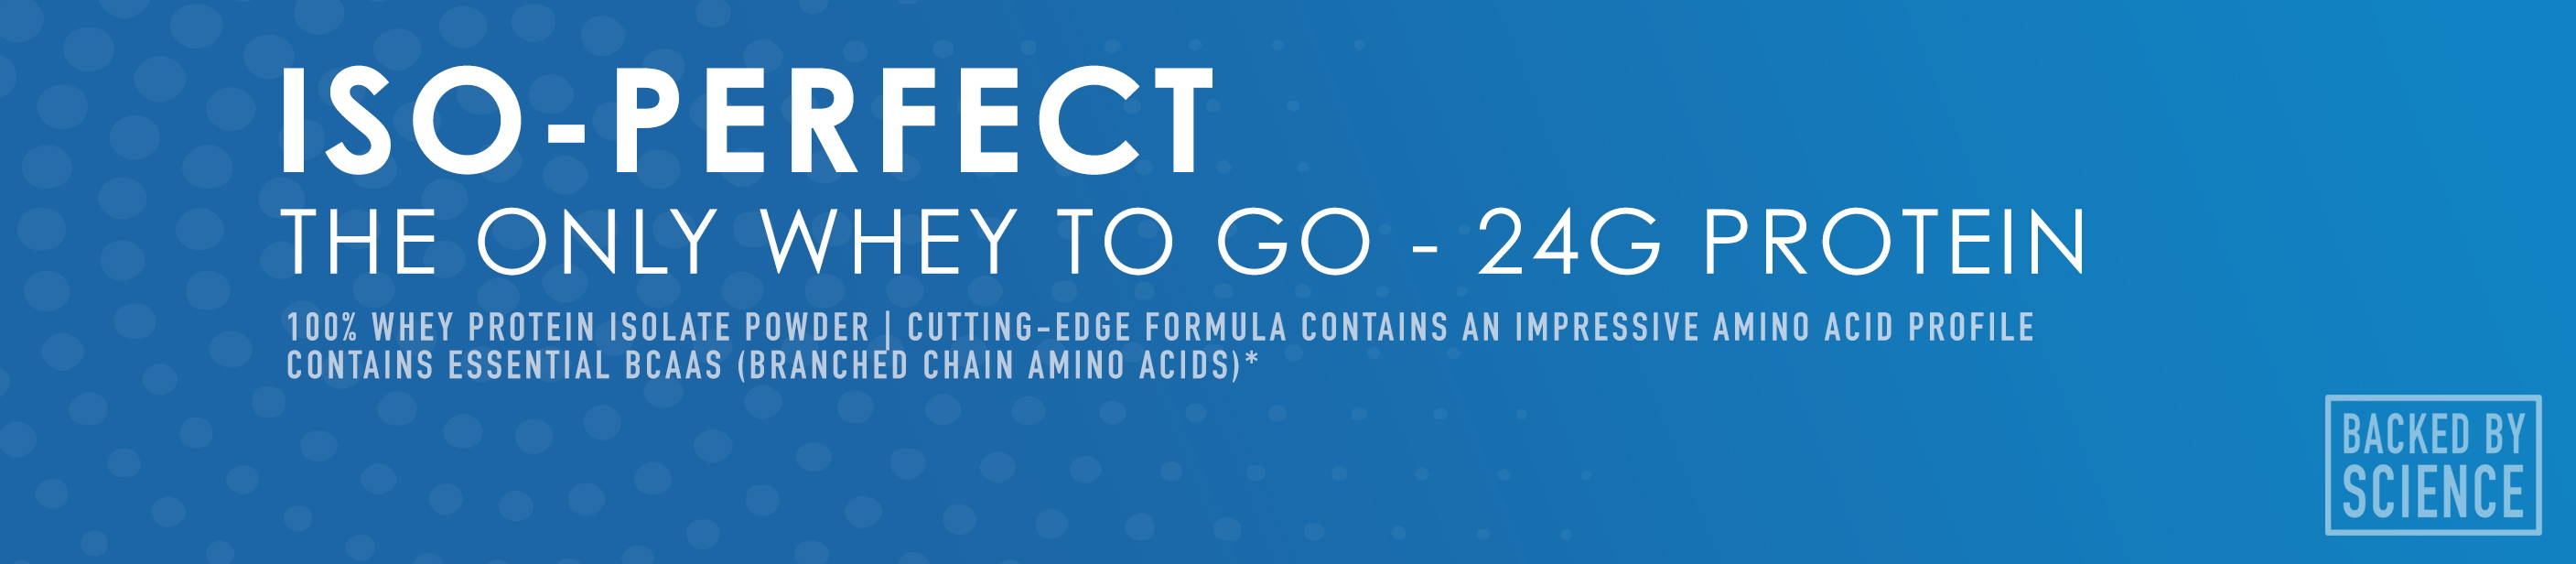 ISO-Perfect - The only whey to go 24g protein - NuEthix